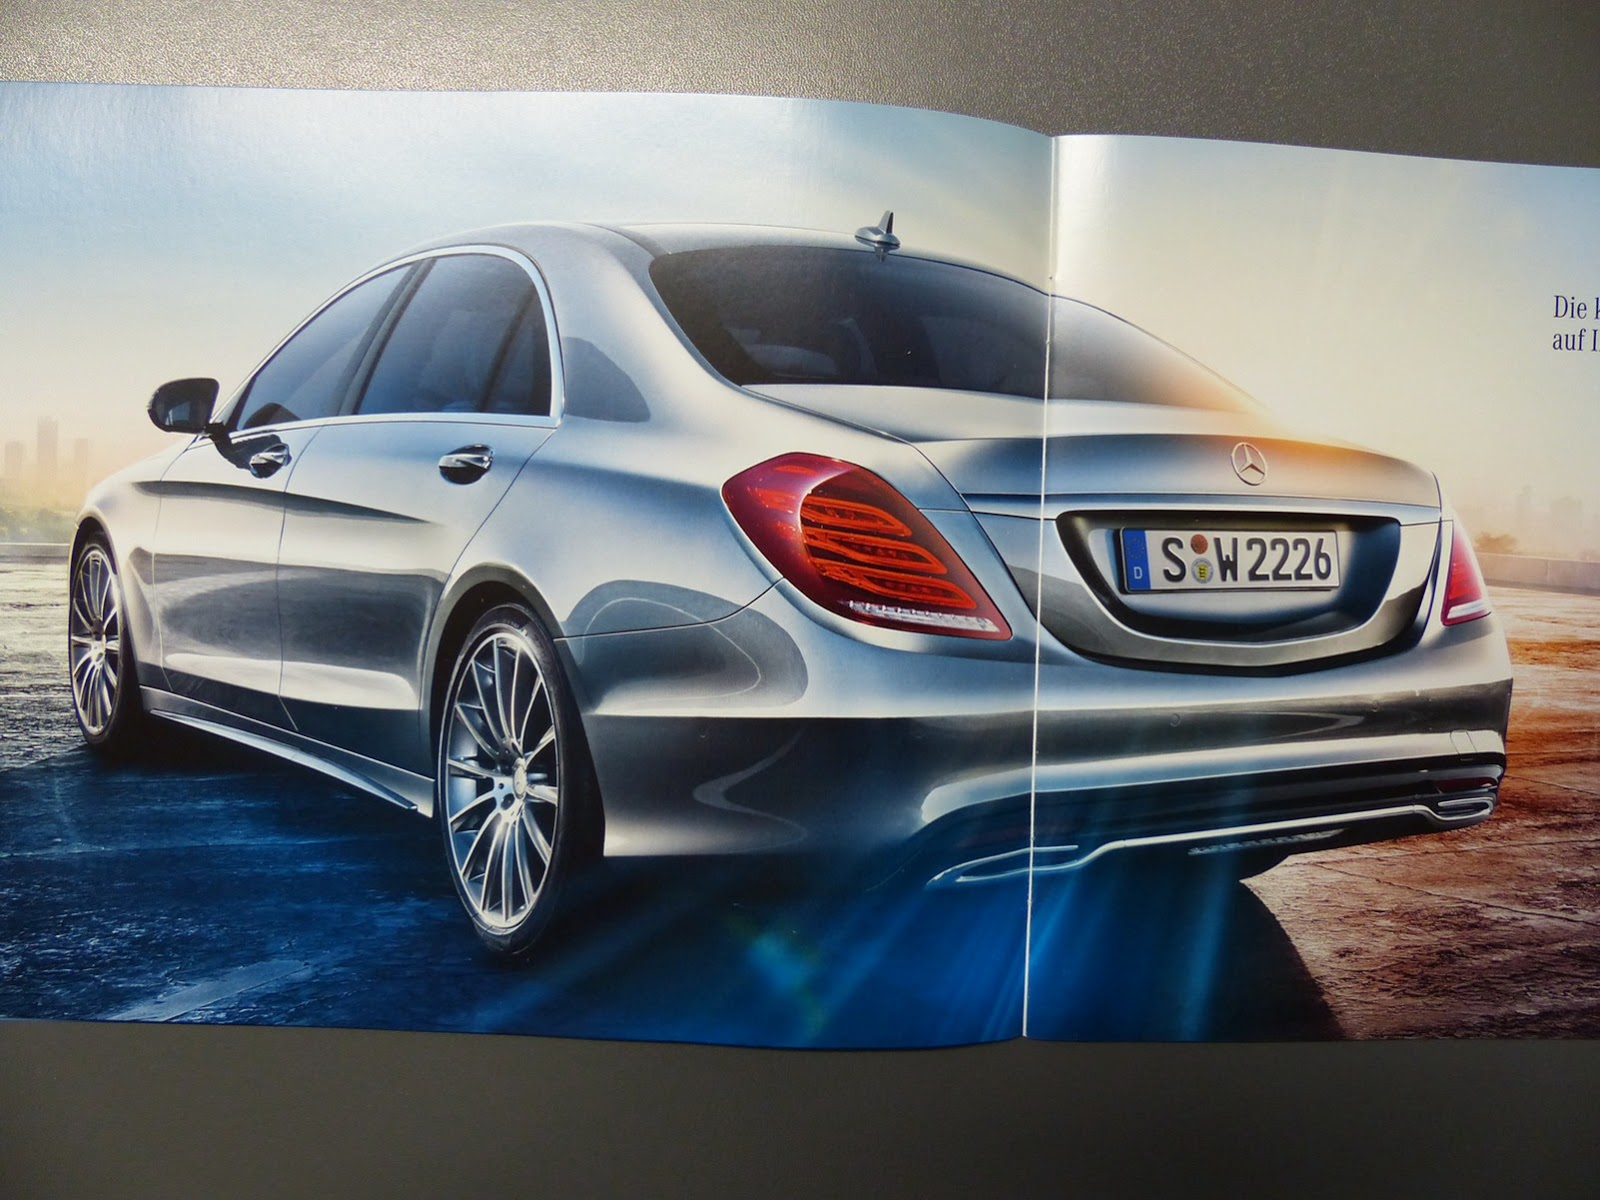 2014 mercedes benz s class leaked via official brochure gtspirit. Black Bedroom Furniture Sets. Home Design Ideas